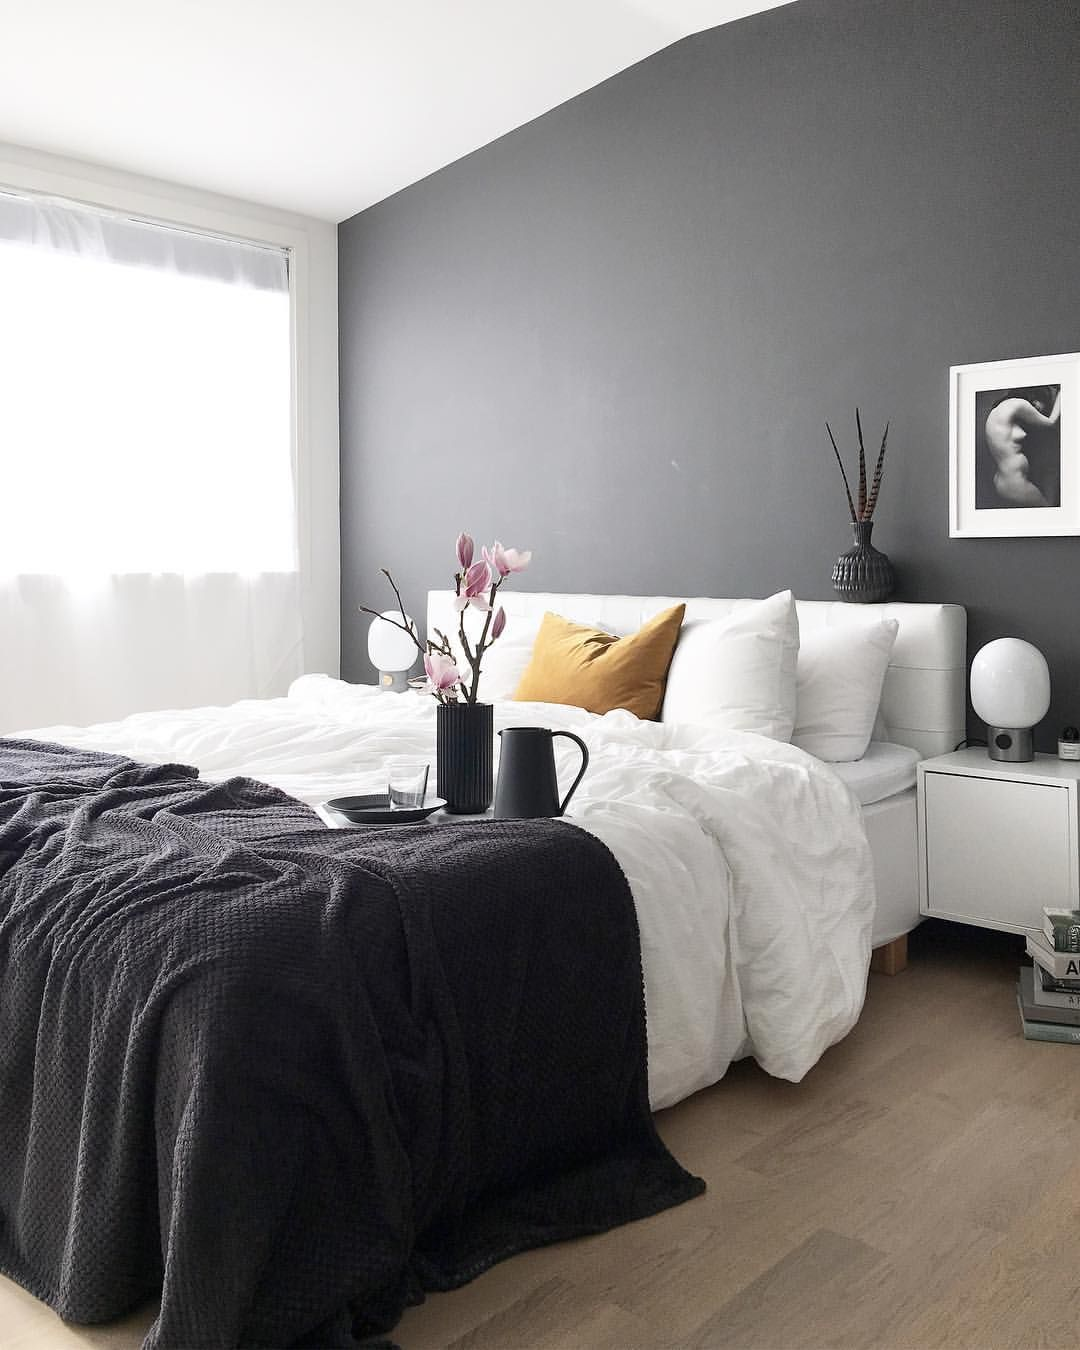 Gefallt 2 973 Mal 57 Kommentare Veronica Palettenoir Auf Instagram Most Liked Bedroom Post With Mo With Images Gray Bedroom Walls Bedroom Wall Bedroom Inspirations